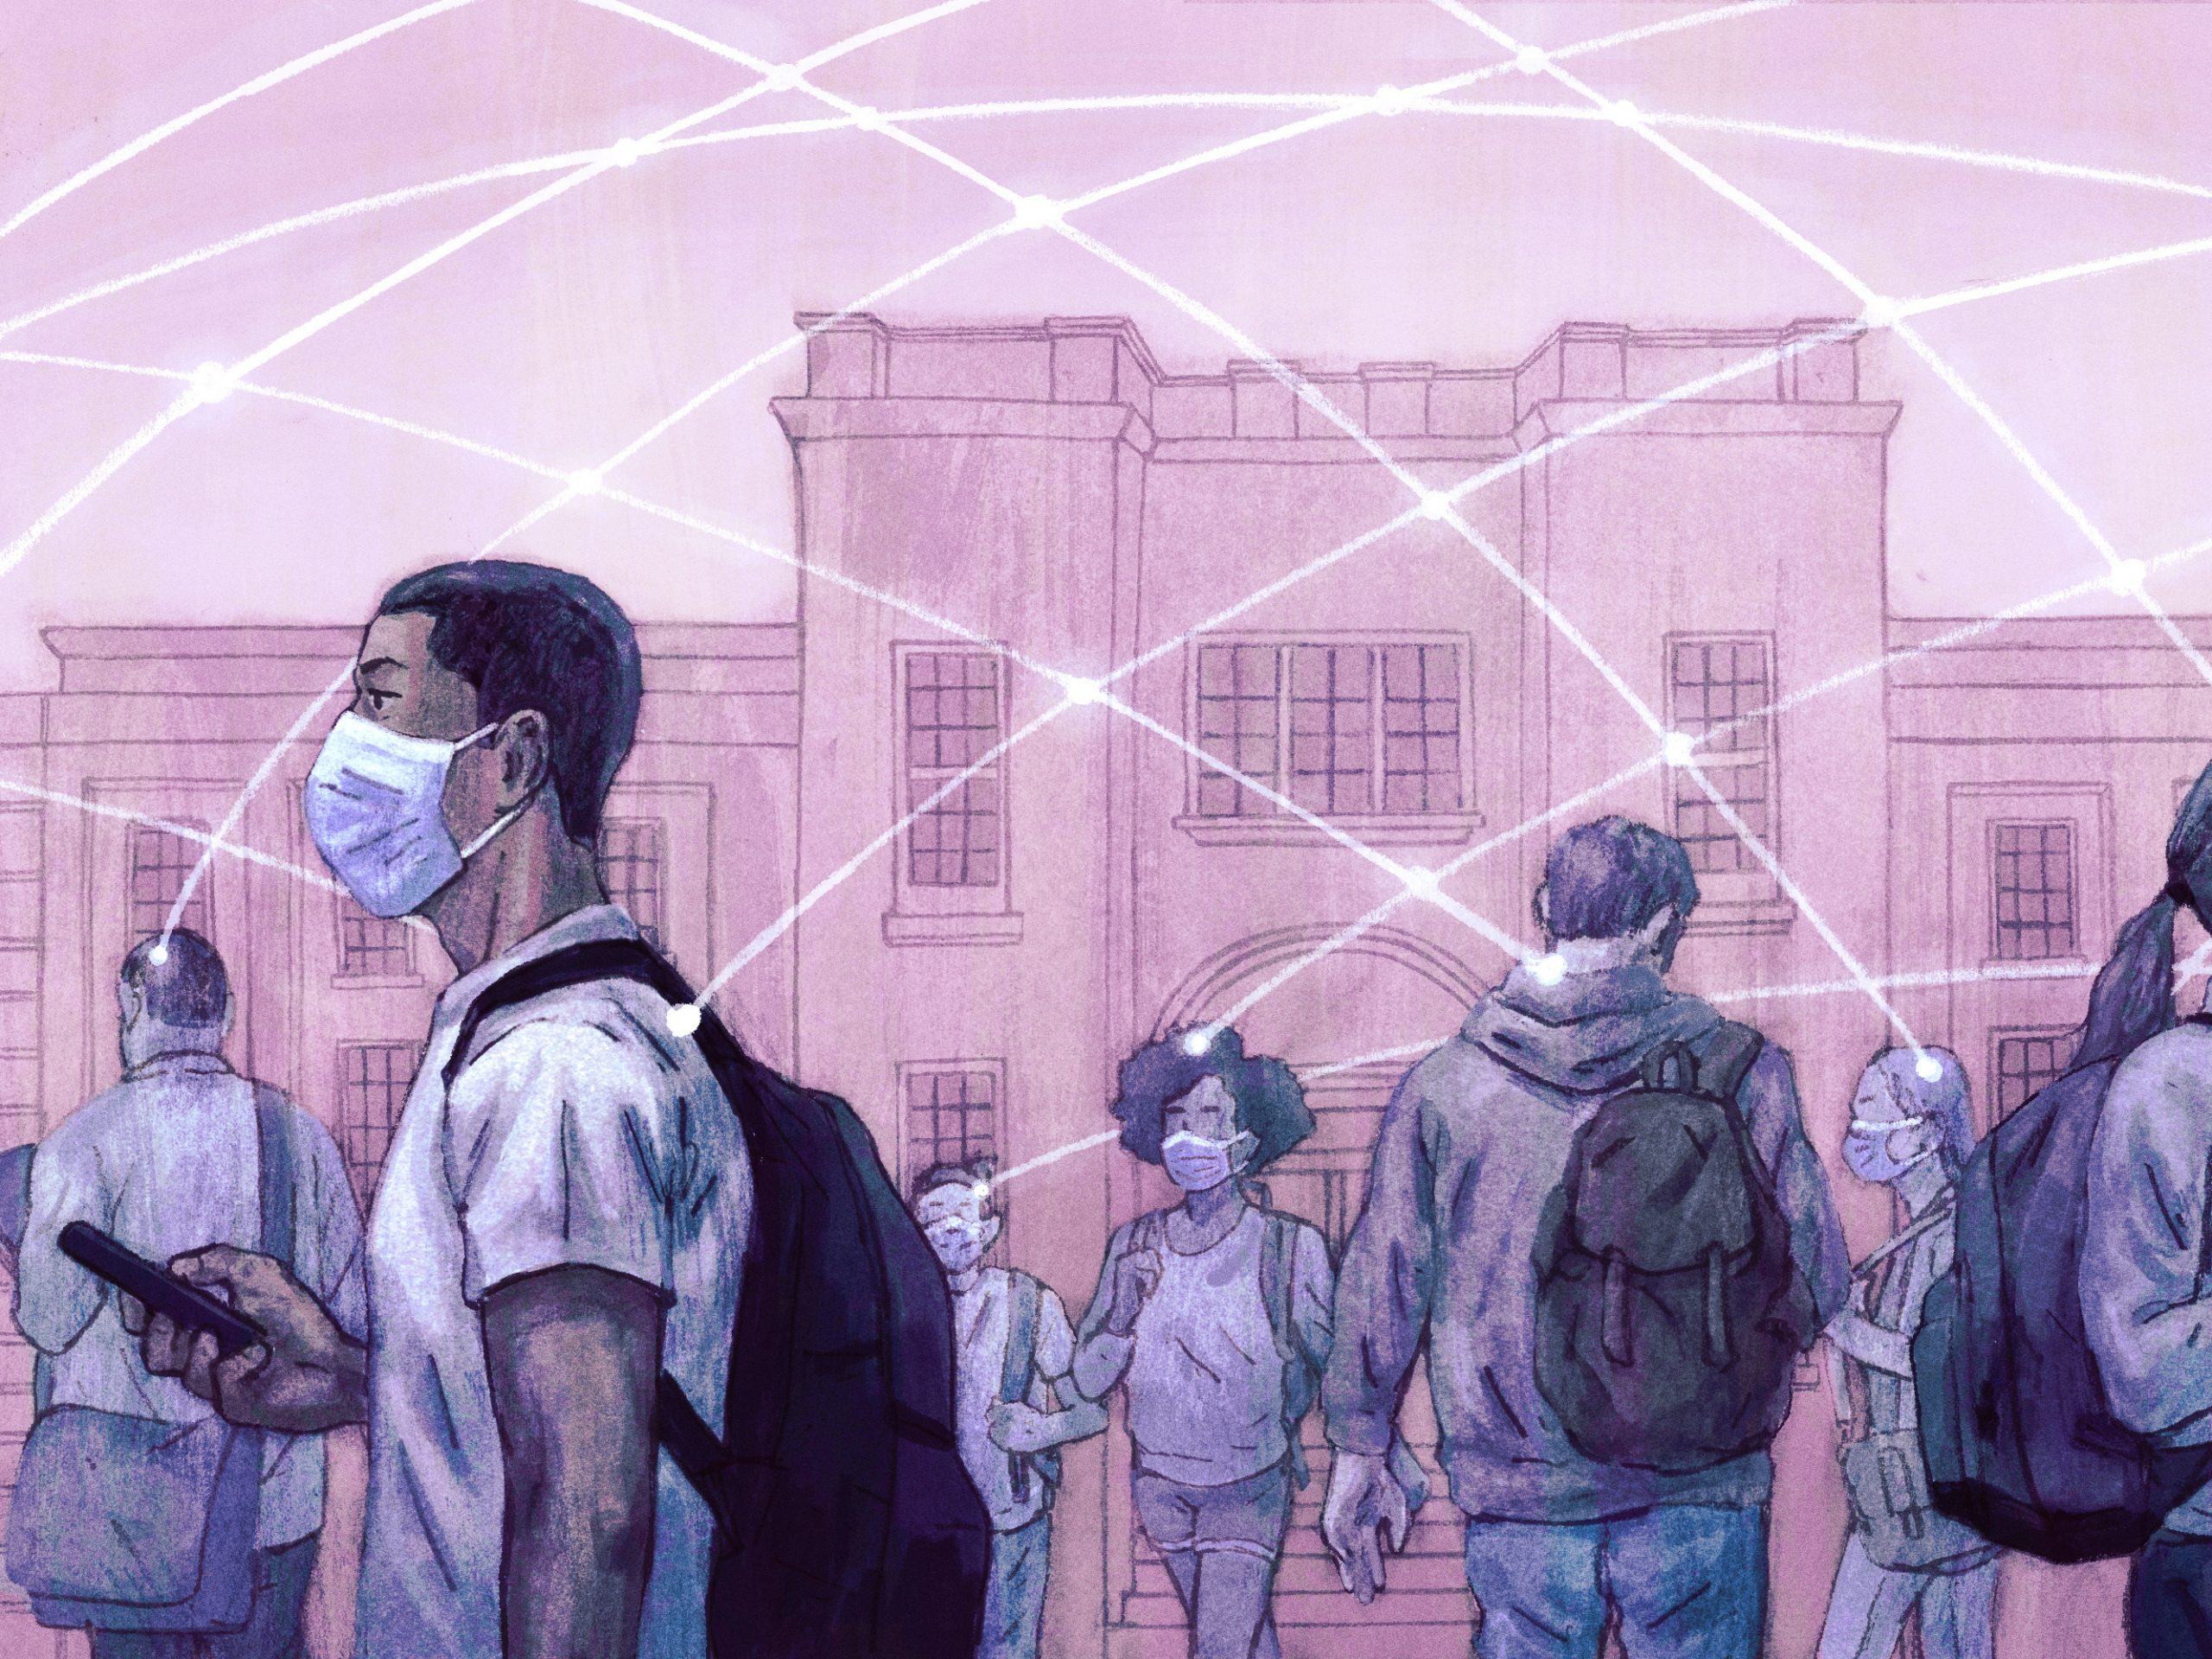 As college students return to campus, what social contracts will have to be in place to keep the virus from spreading?